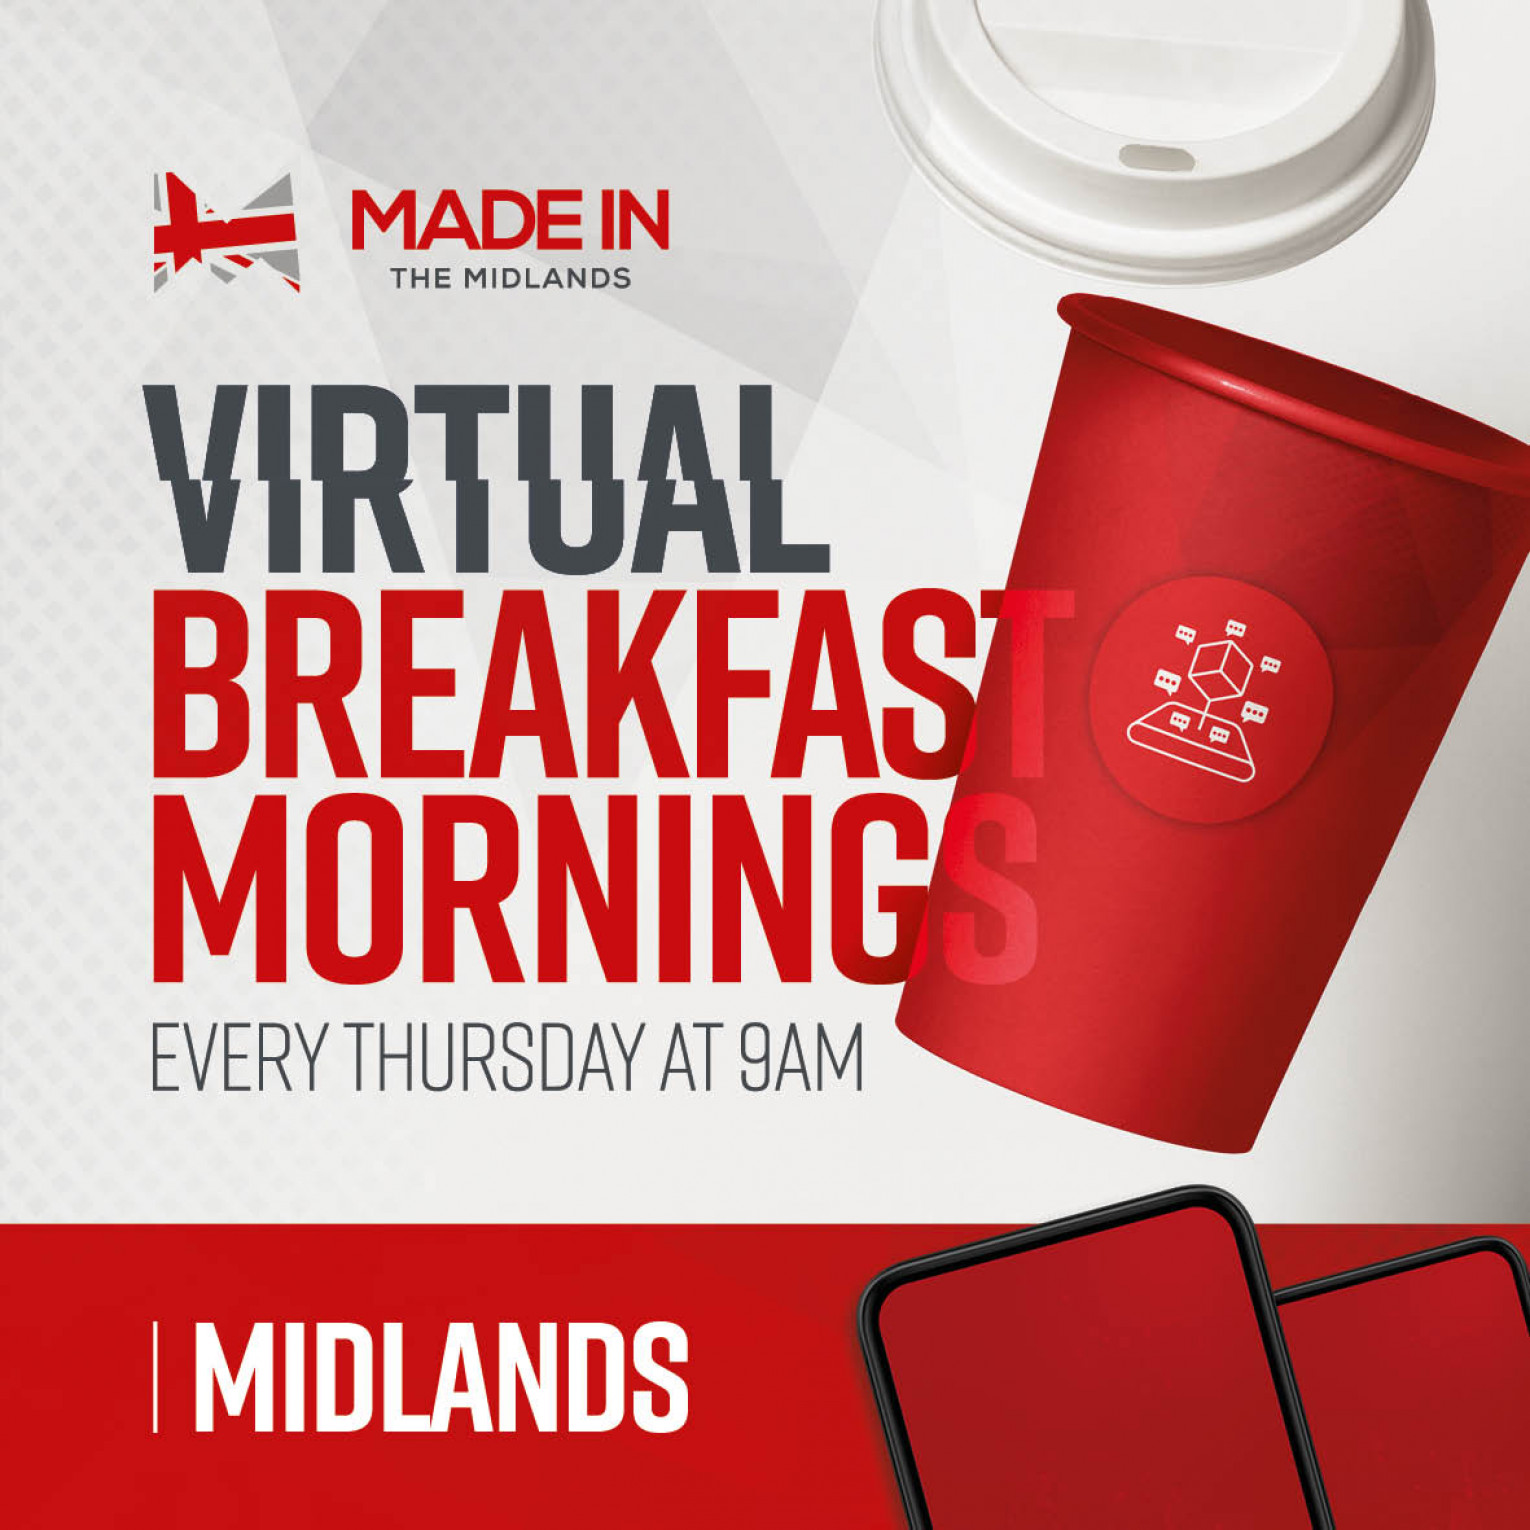 Made In The Midlands Virtual Breakfast Morning with RICOH